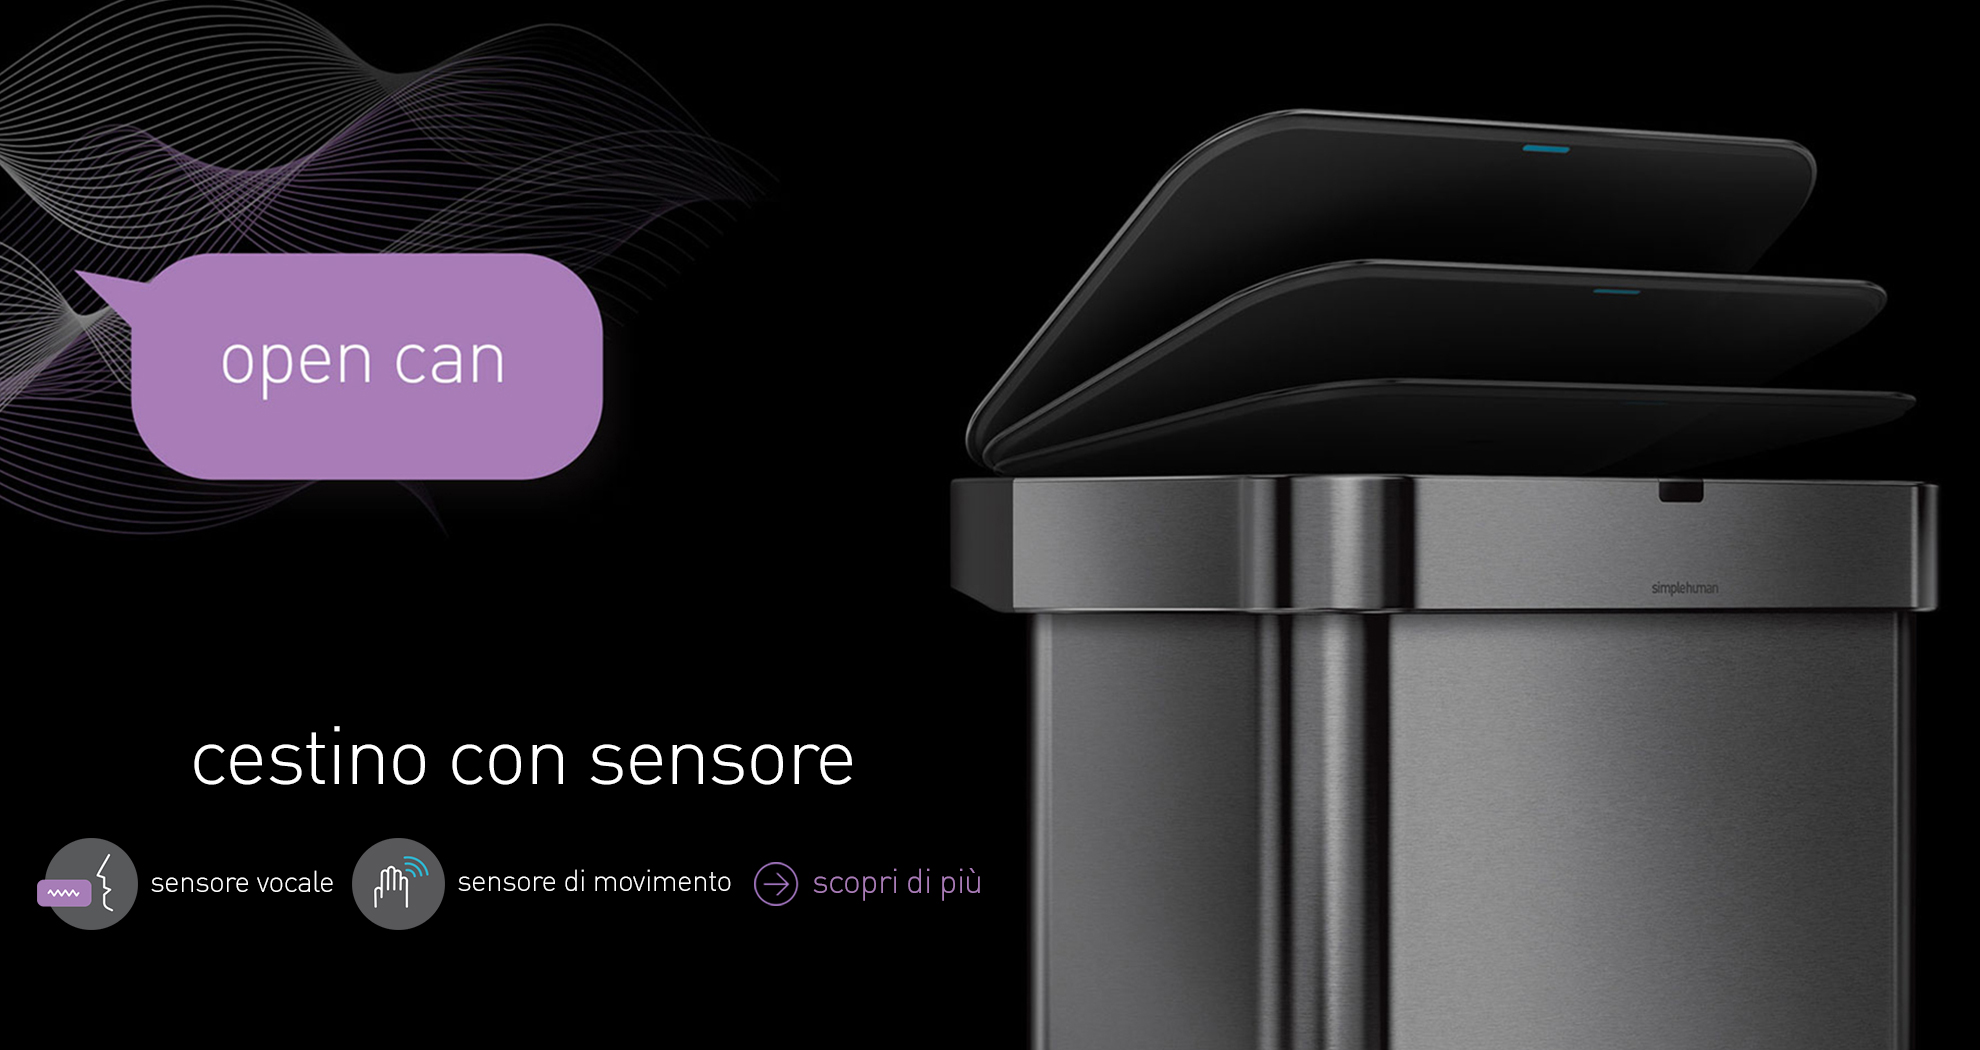 sensor bin with voice and motion sensor